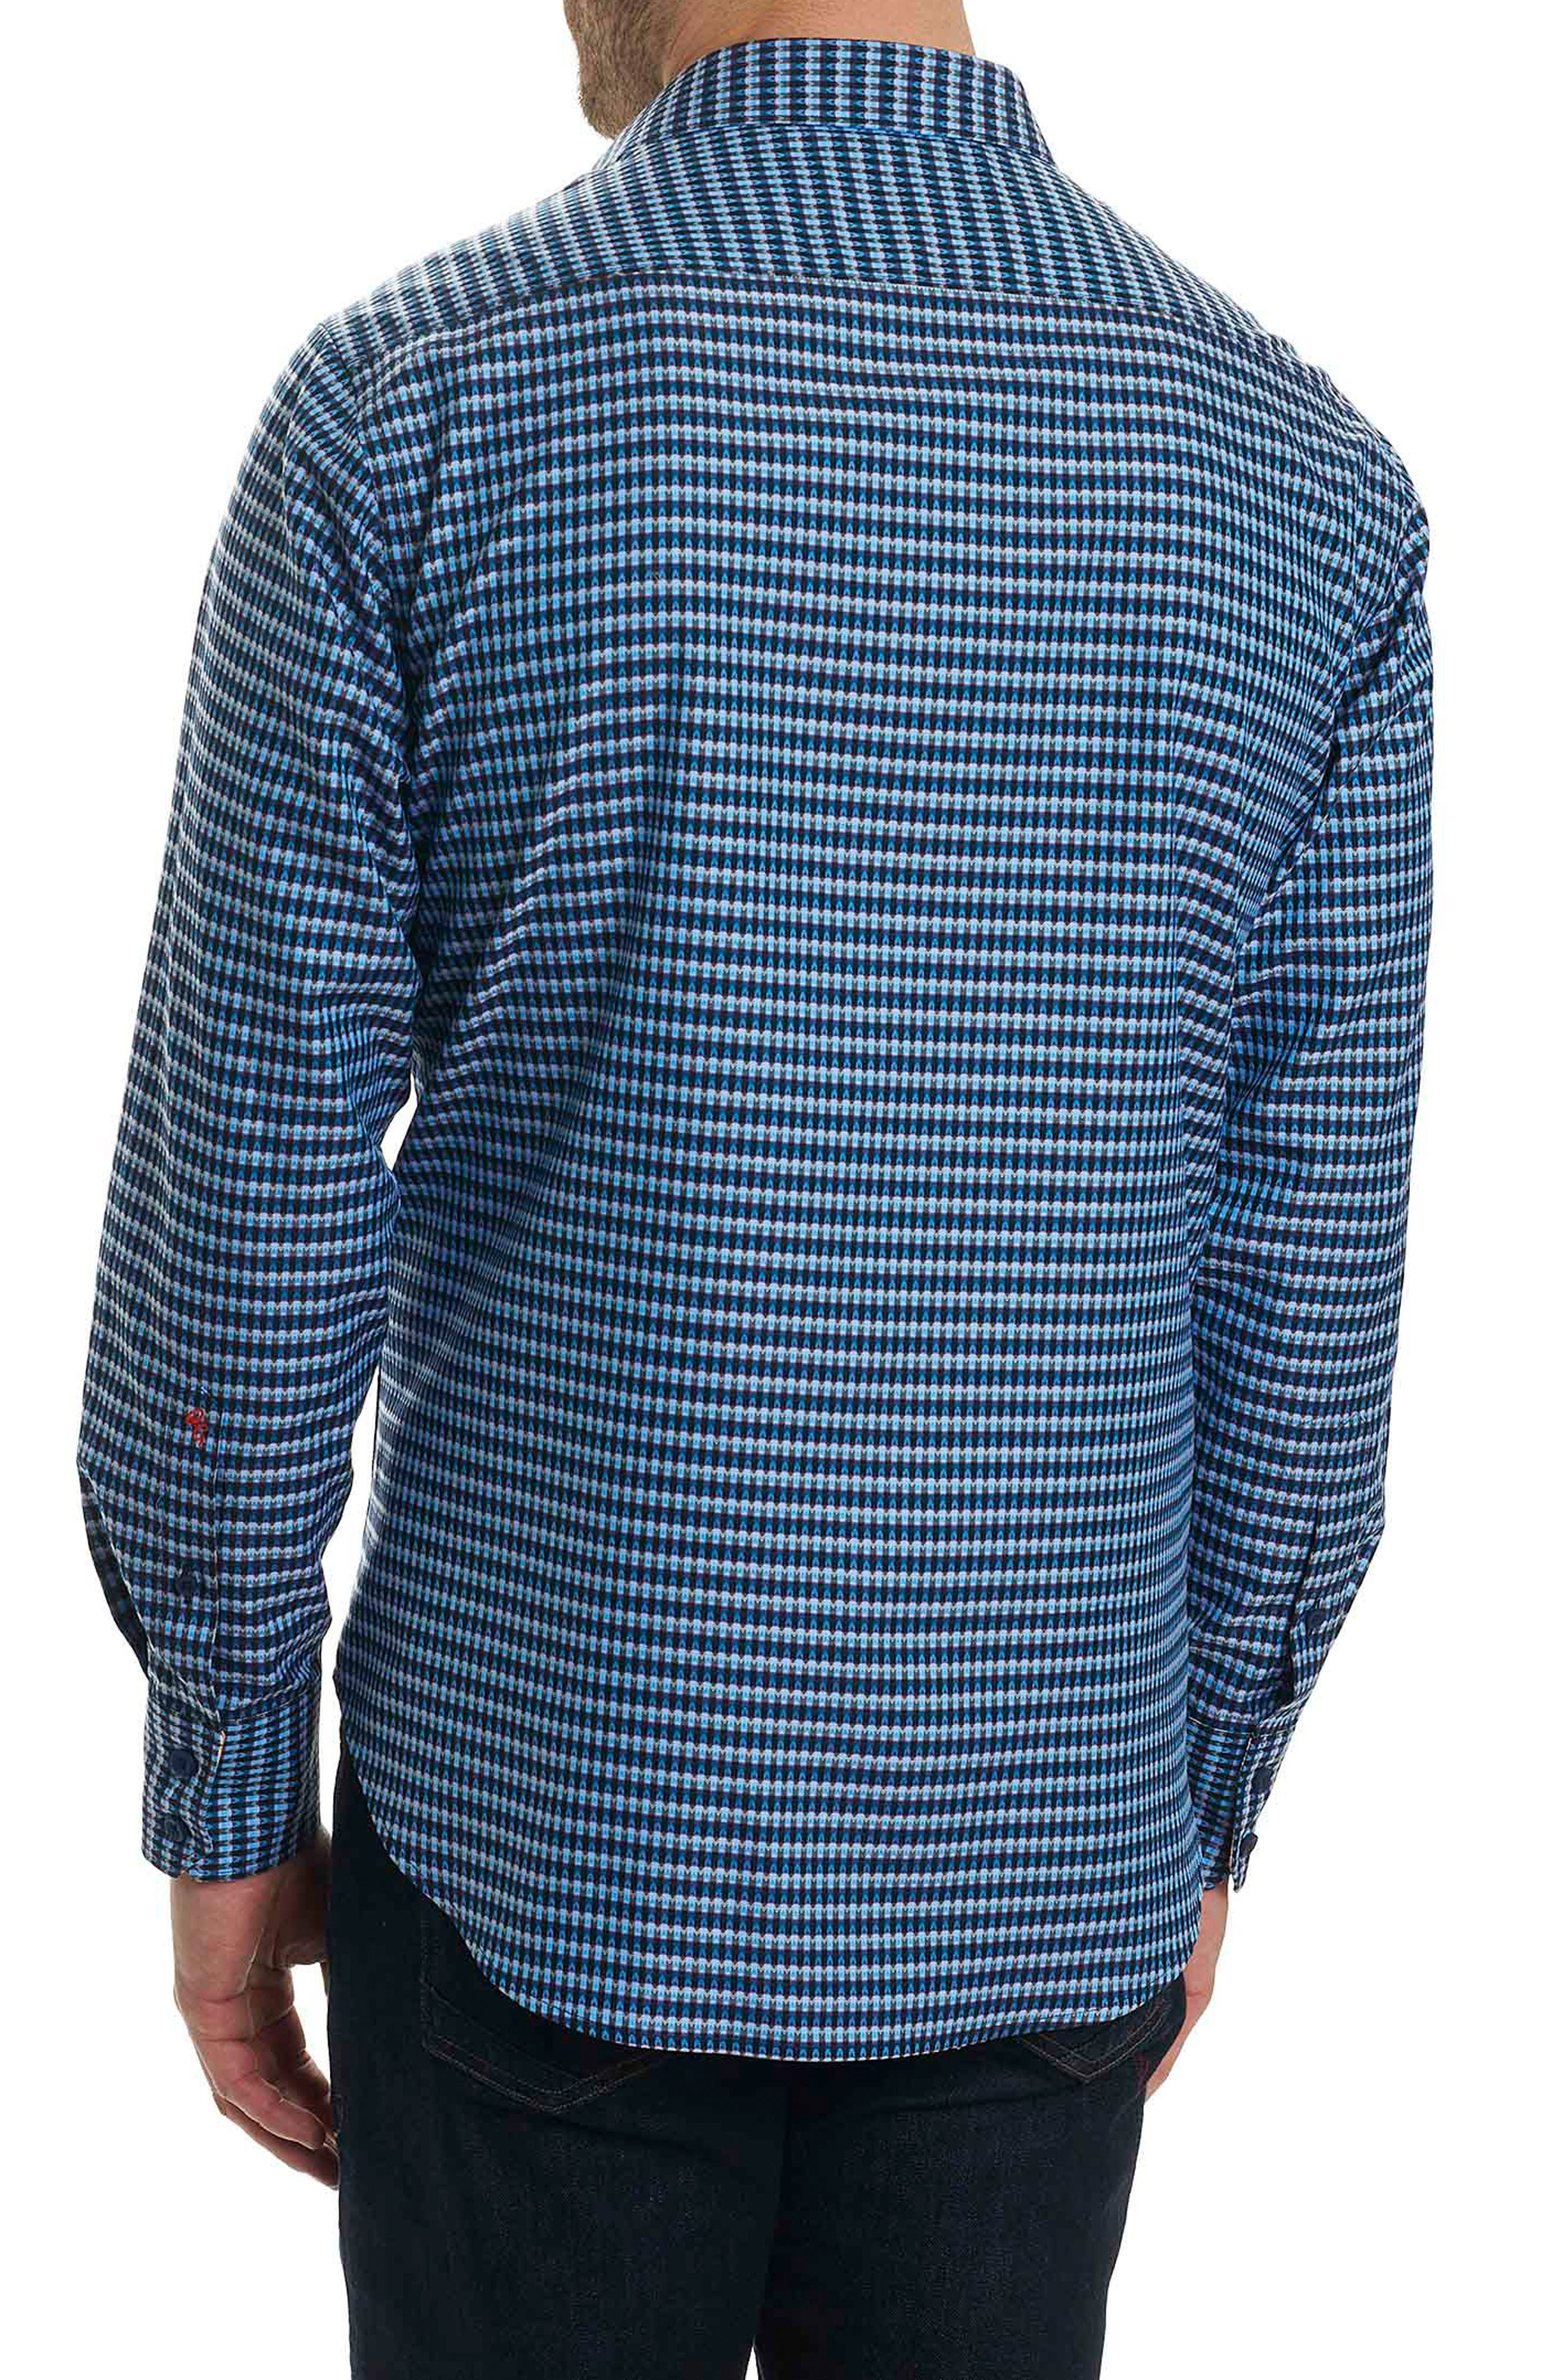 Hill Punch Classic Fit Print Sport Shirt,                             Alternate thumbnail 2, color,                             Navy